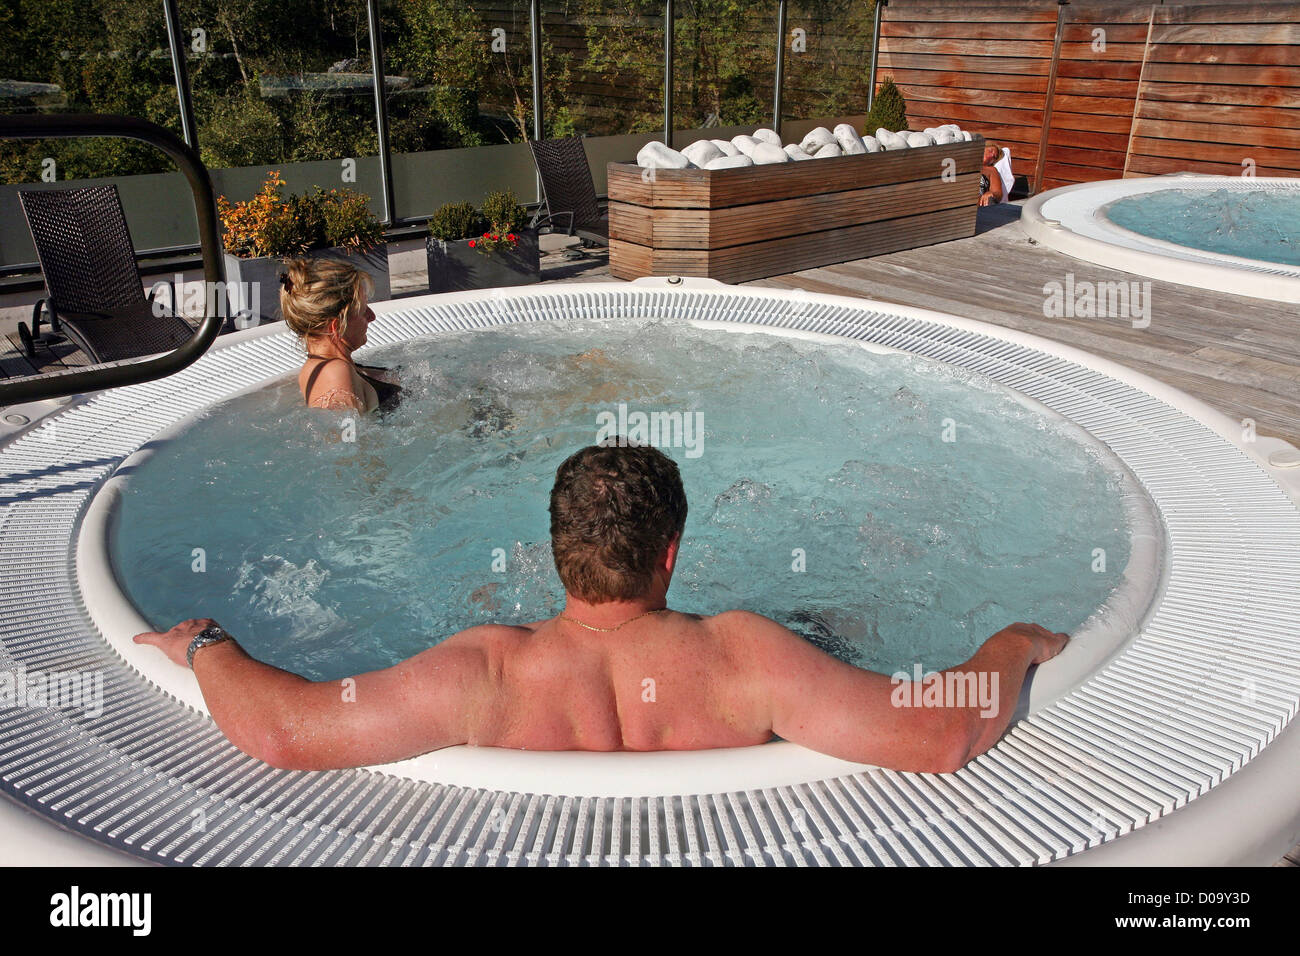 A SESSION IN THE JACUZZI ON THE TERRACE AT THE HYDROTHERAPY CENTER OF BRIDES-LES-BAINS (73) SAVOY FRANCE - Stock Image